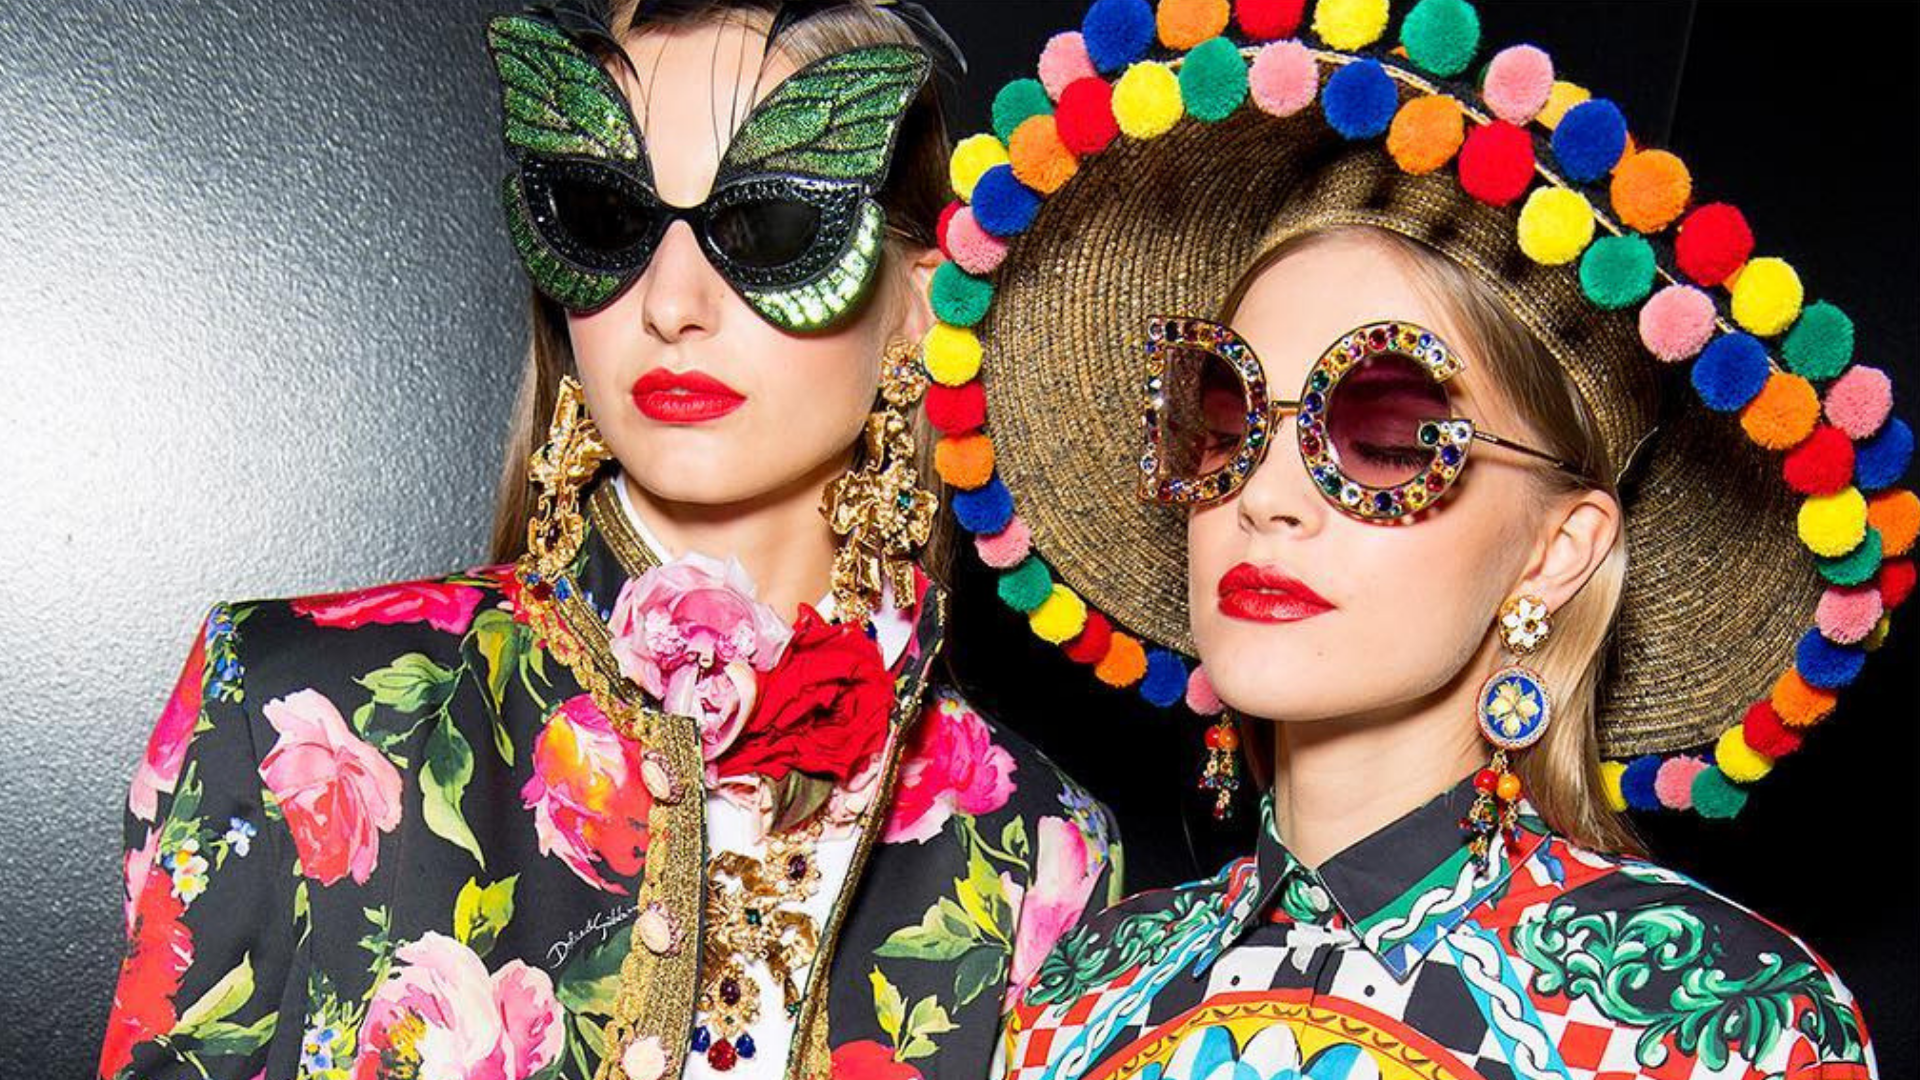 Dolce & Gabbana Is Presenting A Fashion Show In The Dubai Mall Today